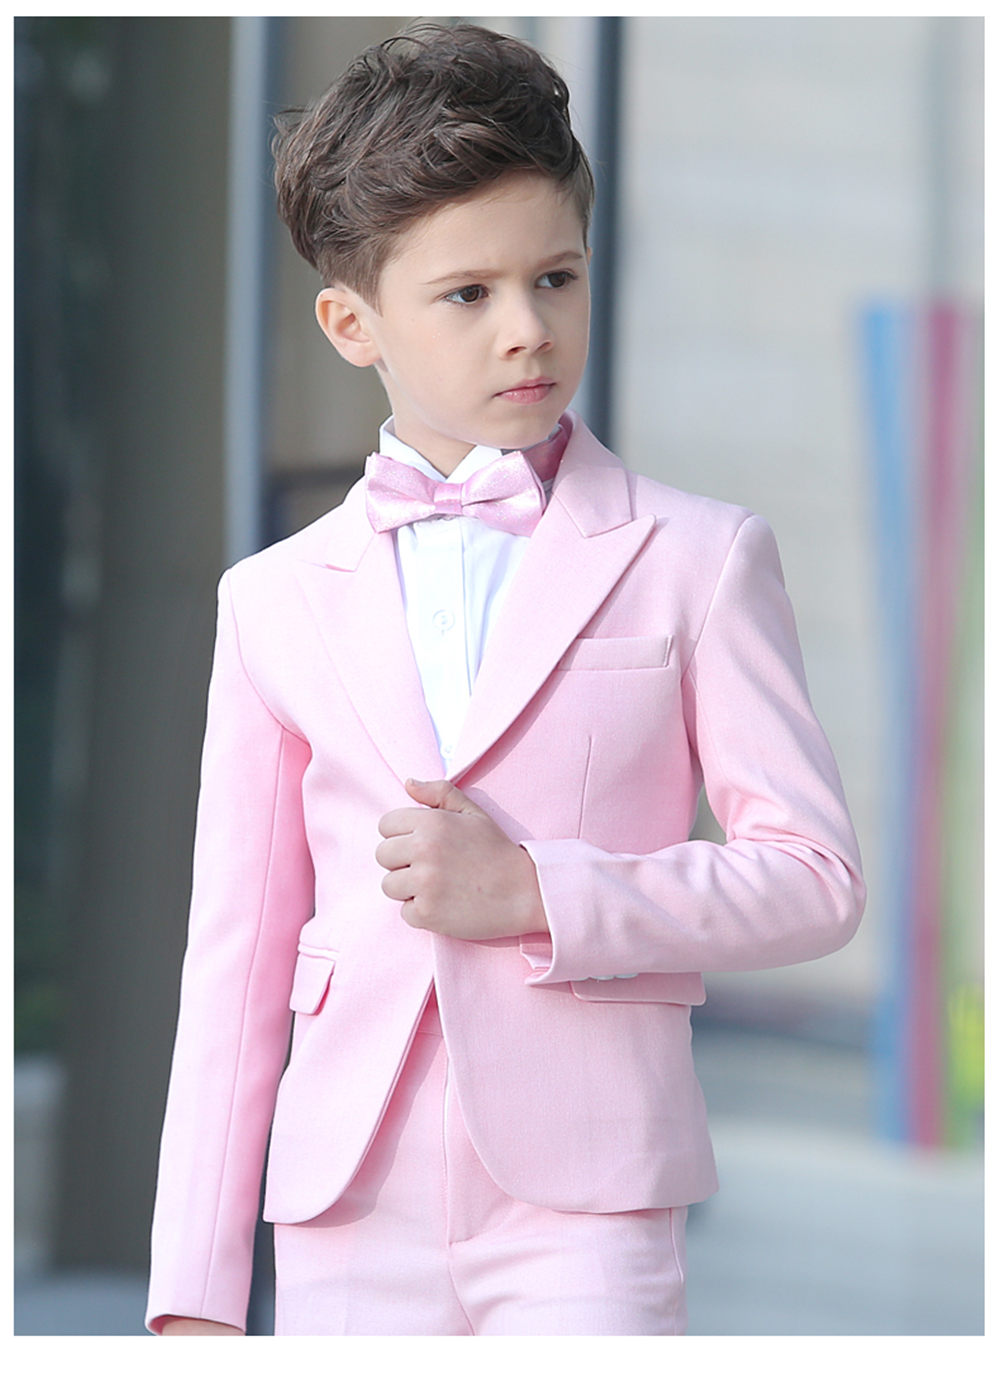 2019 slim fit Pink Kid Suit Children Wedding Suits Custom Made Blazer Boys suits Groom Tuxedo 2 Pieces(Jacket+Pants)